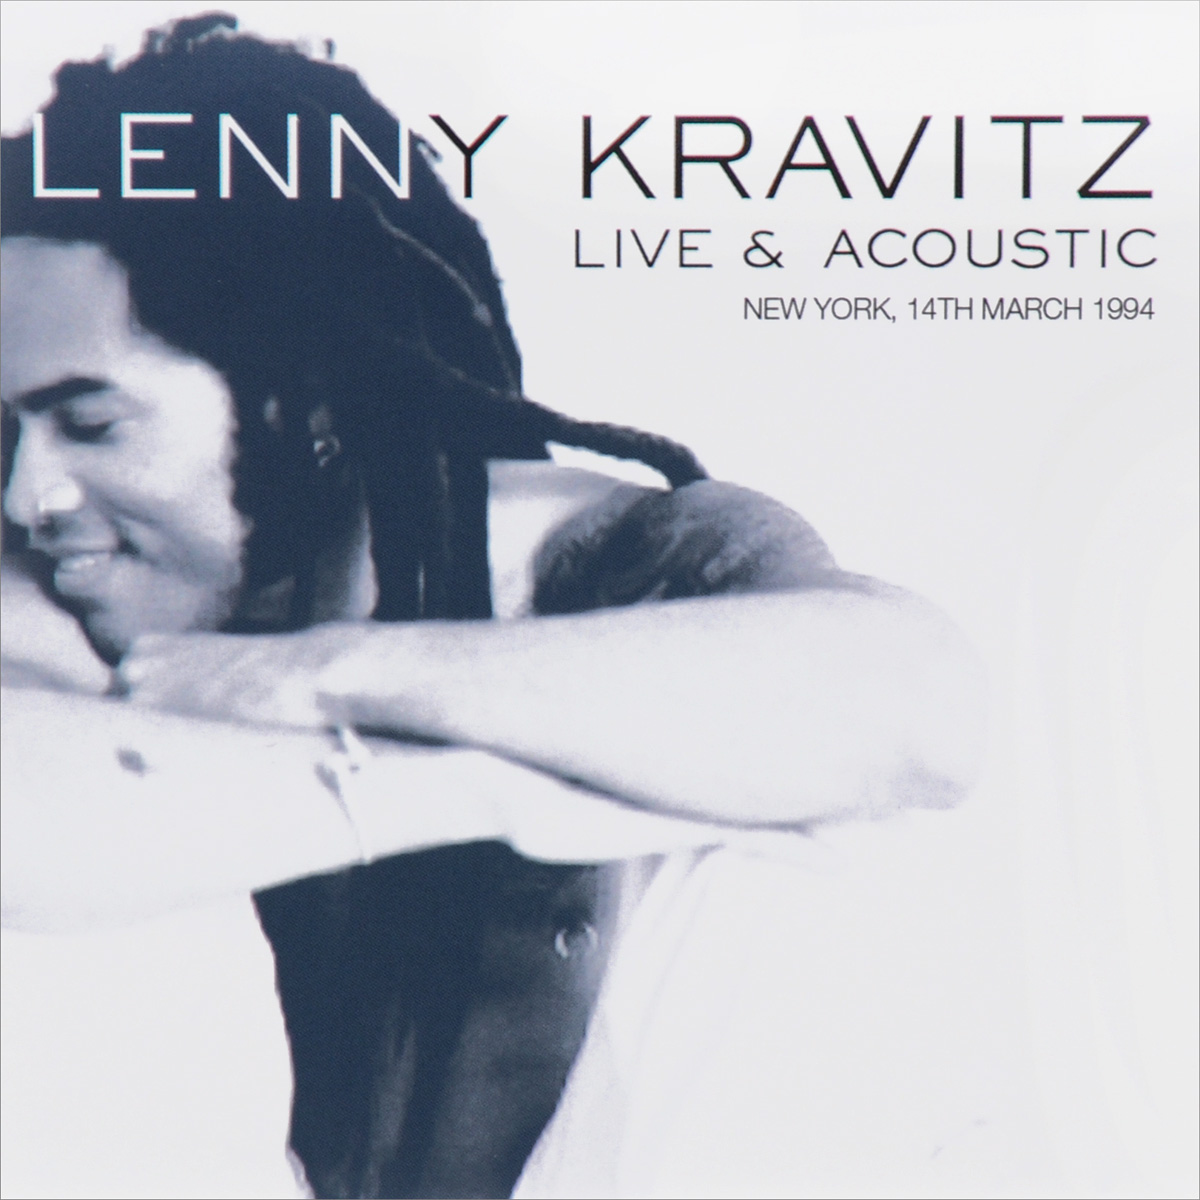 Ленни Кравиц Lenny Kravitz. Live & Acoustic. New York, 14th March 1994 lenny kravitz madrid